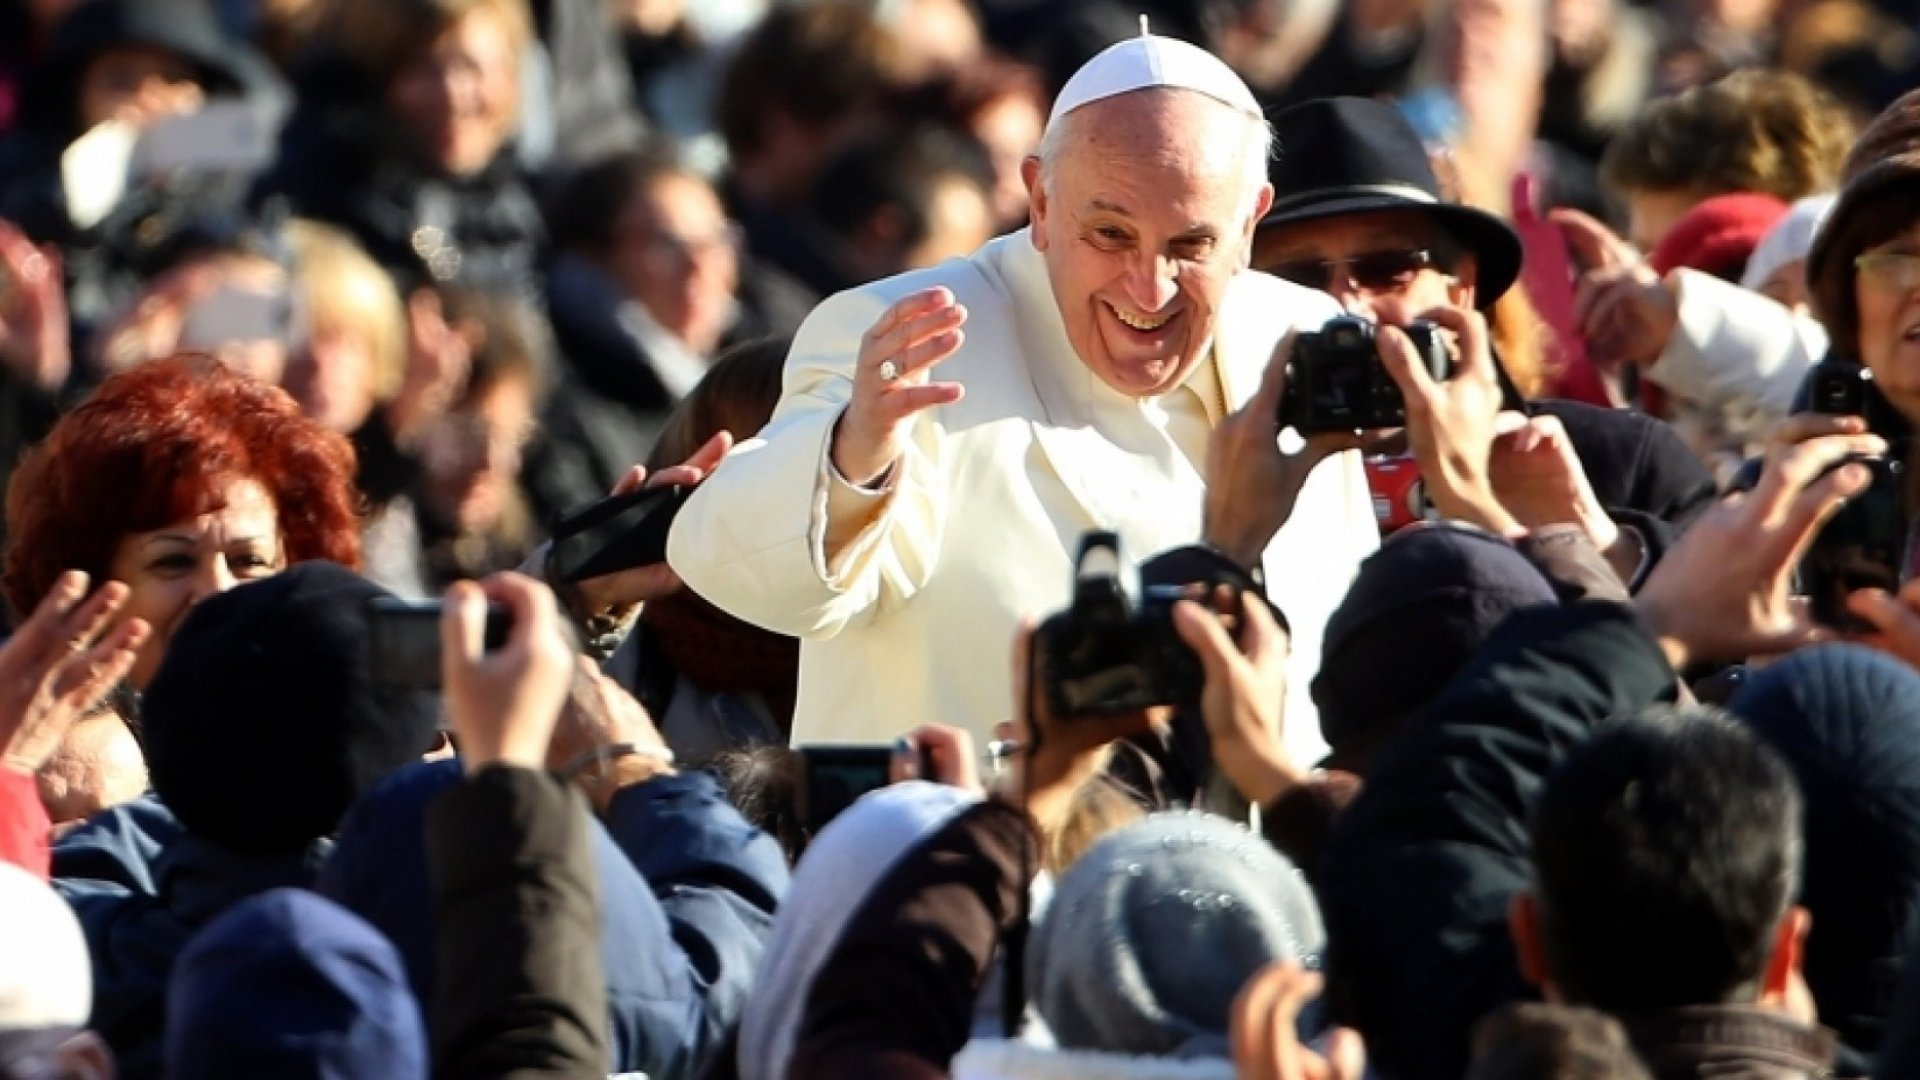 7 Surprising Traits That Make the Pope So Popular